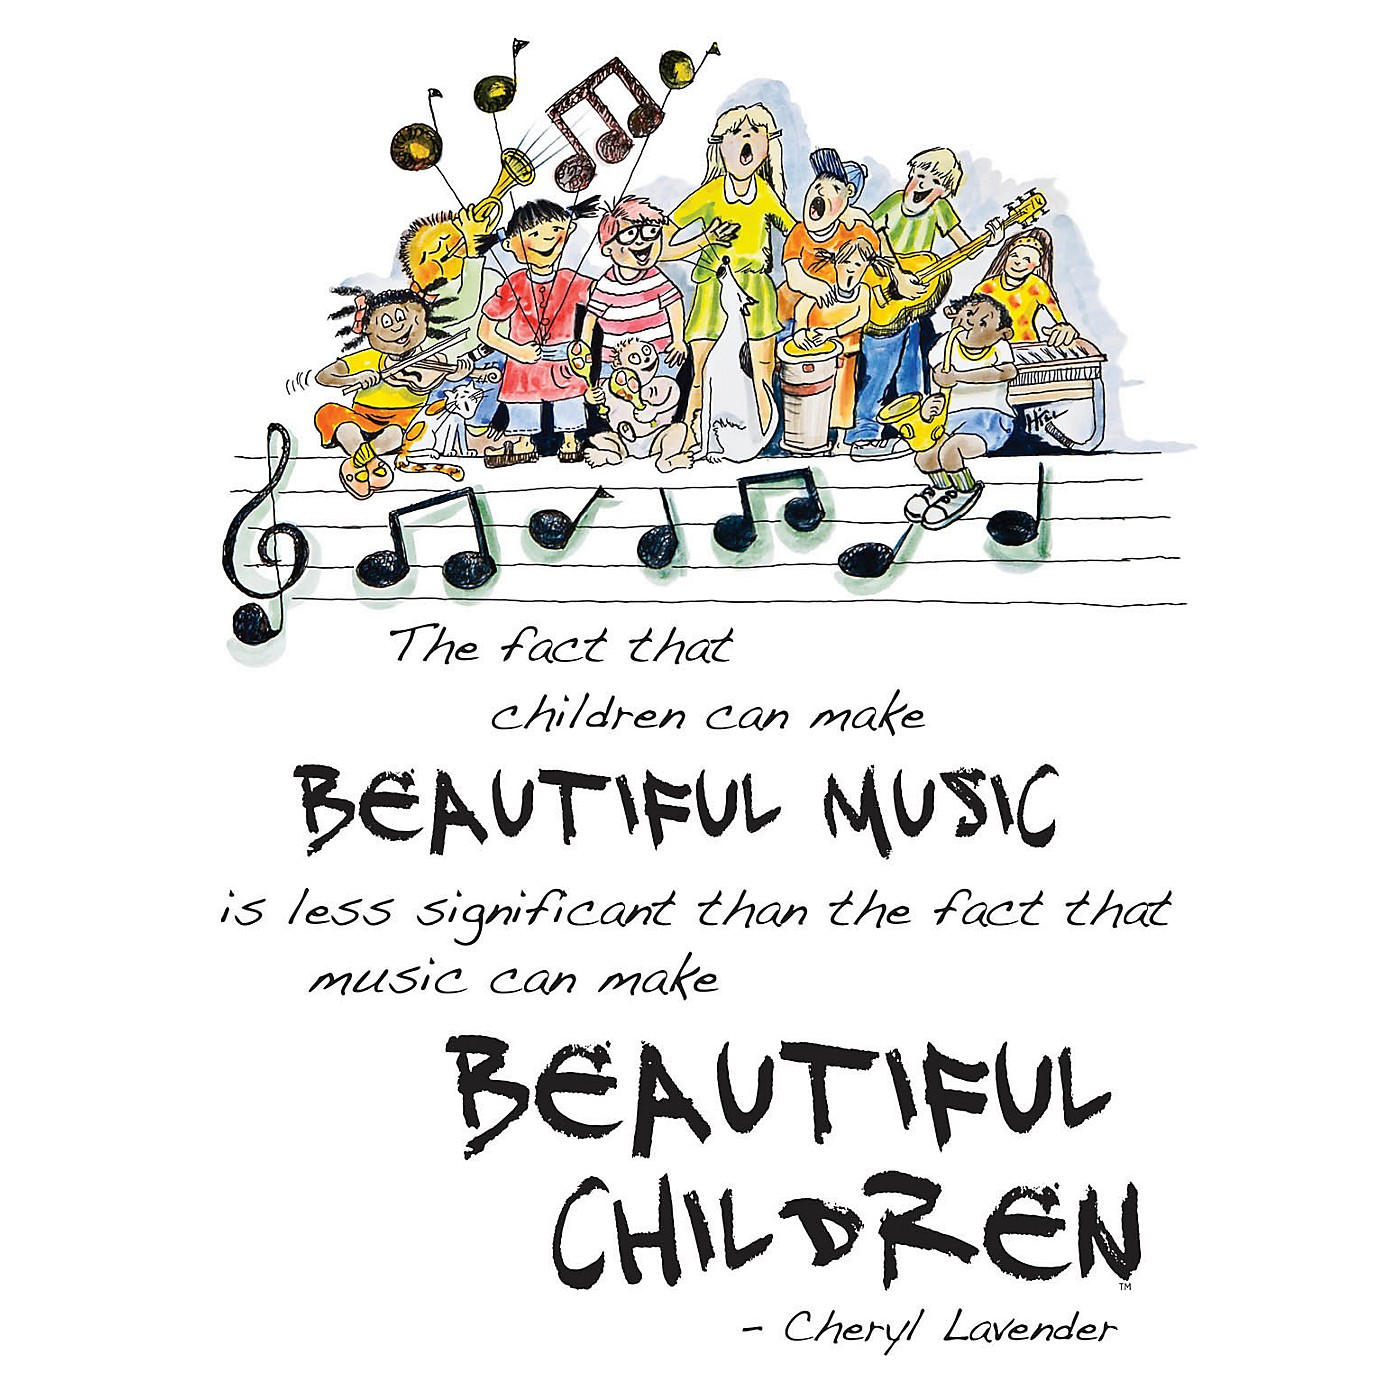 Hal Leonard Beautiful Music, Beautiful Children Poster (18x24 Framed Poster) Composed by Cheryl Lavender thumbnail